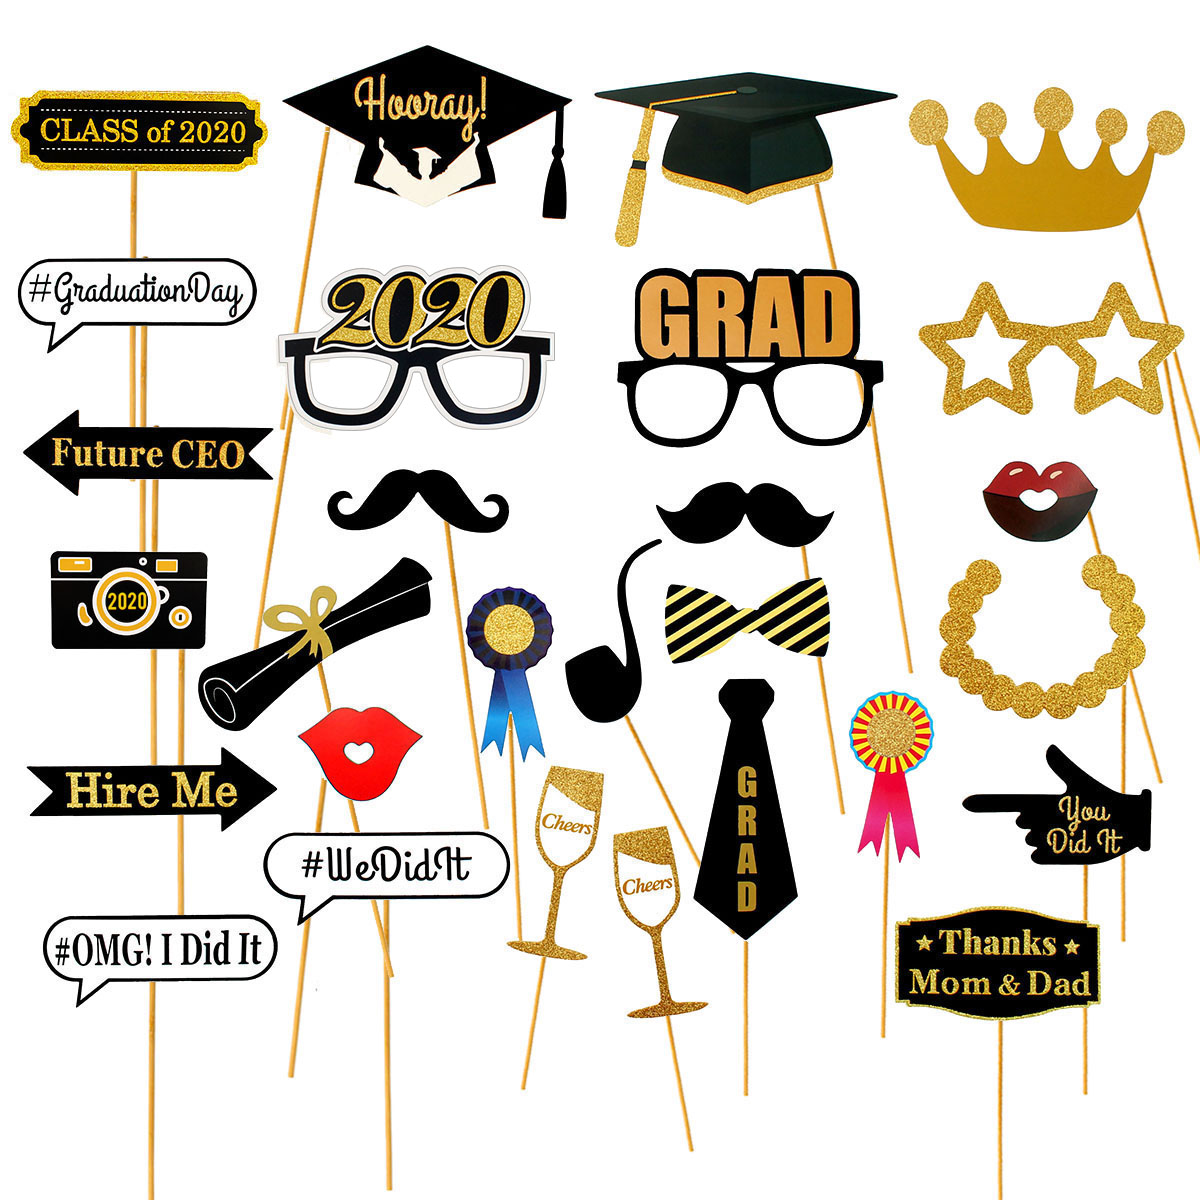 Heronsbill 28pcs Photo Booth Props Graduation Party Decoration 2020 Bachelor Cap Grad Congrats Graduated Supplies PhotoBooth